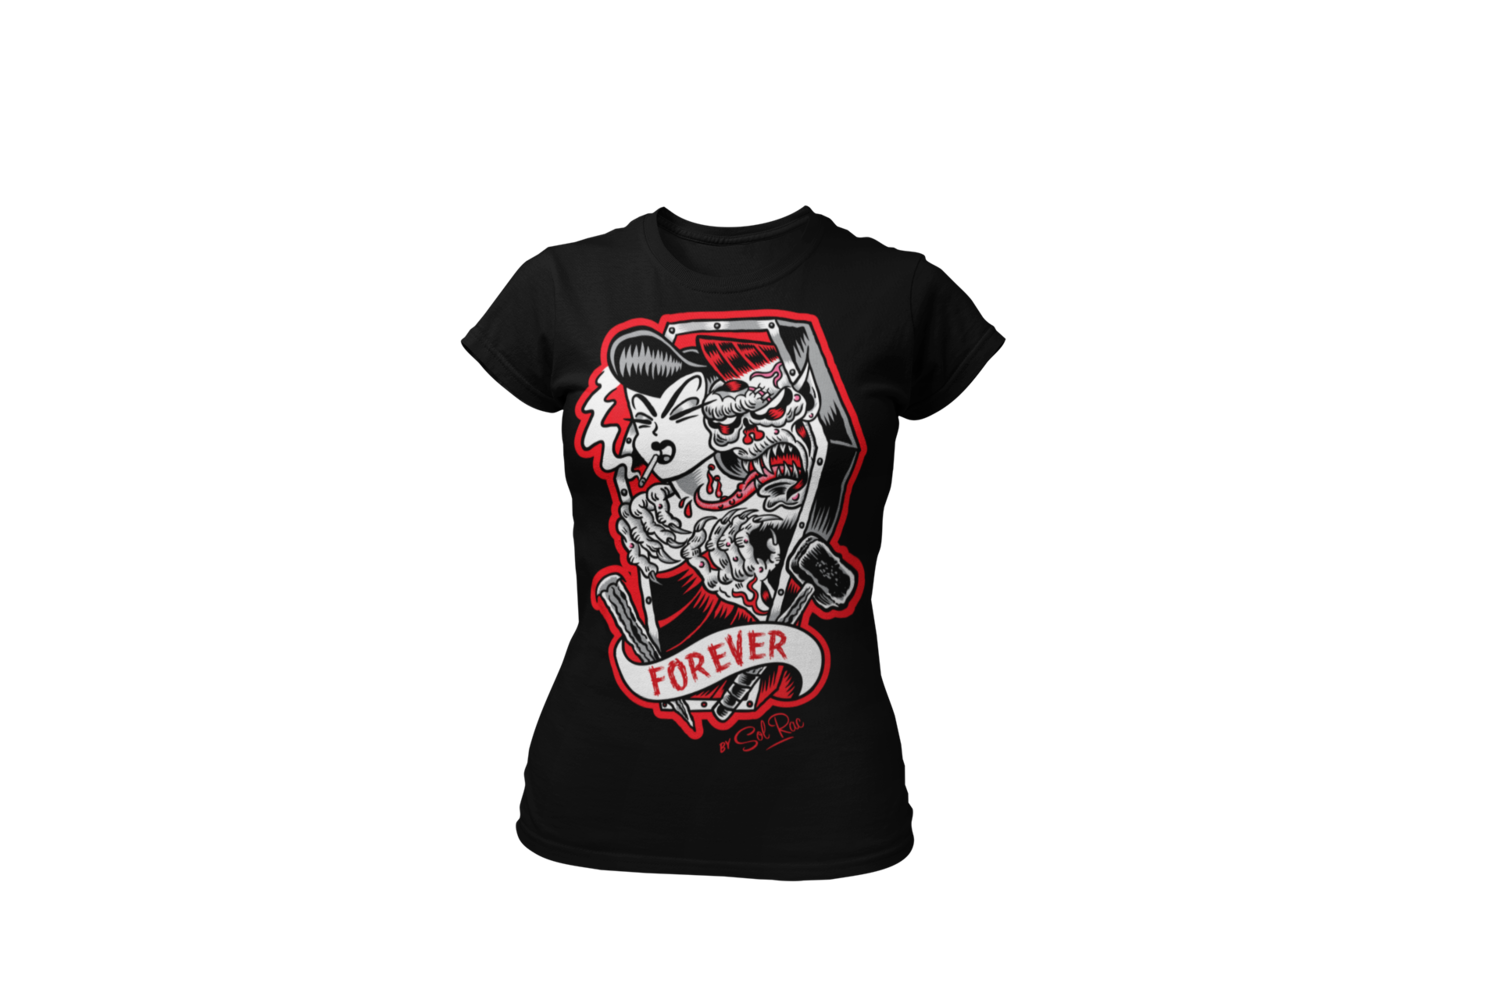 FOREVER T-SHIRT WOMAN by SOL RAC